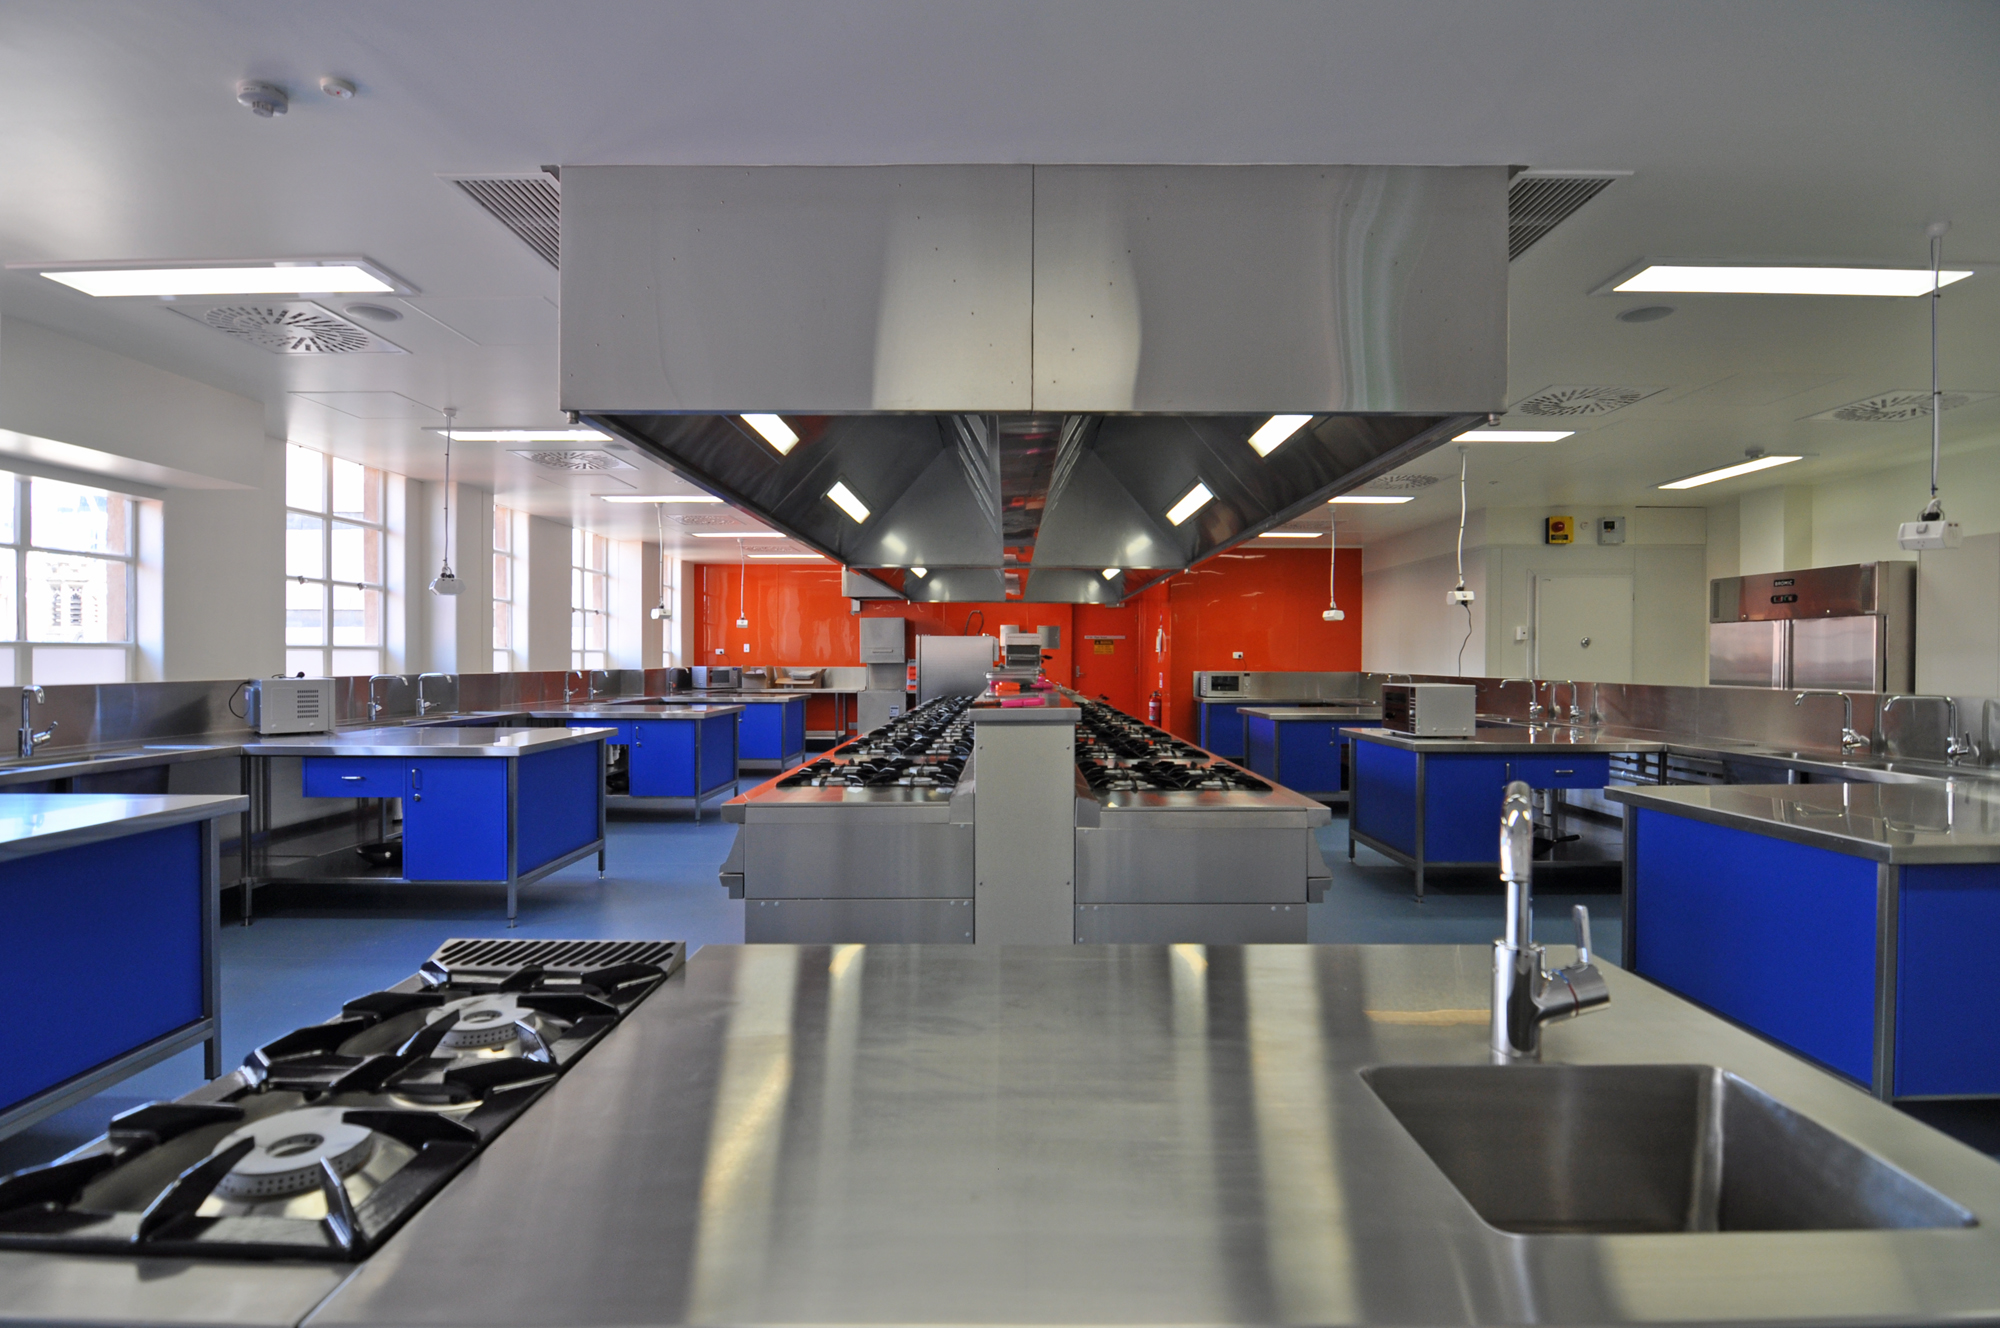 UniSA CEA | NBE Nutrition Hub   Services: BCA Engineers Contractor: Mossop Construction + Interiors Photographer: W+S  Nutrition teaching and research hub for the school of Pharmacy and Health Sciences. The kitchen is capable of teaching 30 students and includes preparation areas, instructor bench with audio integration throughout, dry and cold stores, freezer and commercial dishwashing area